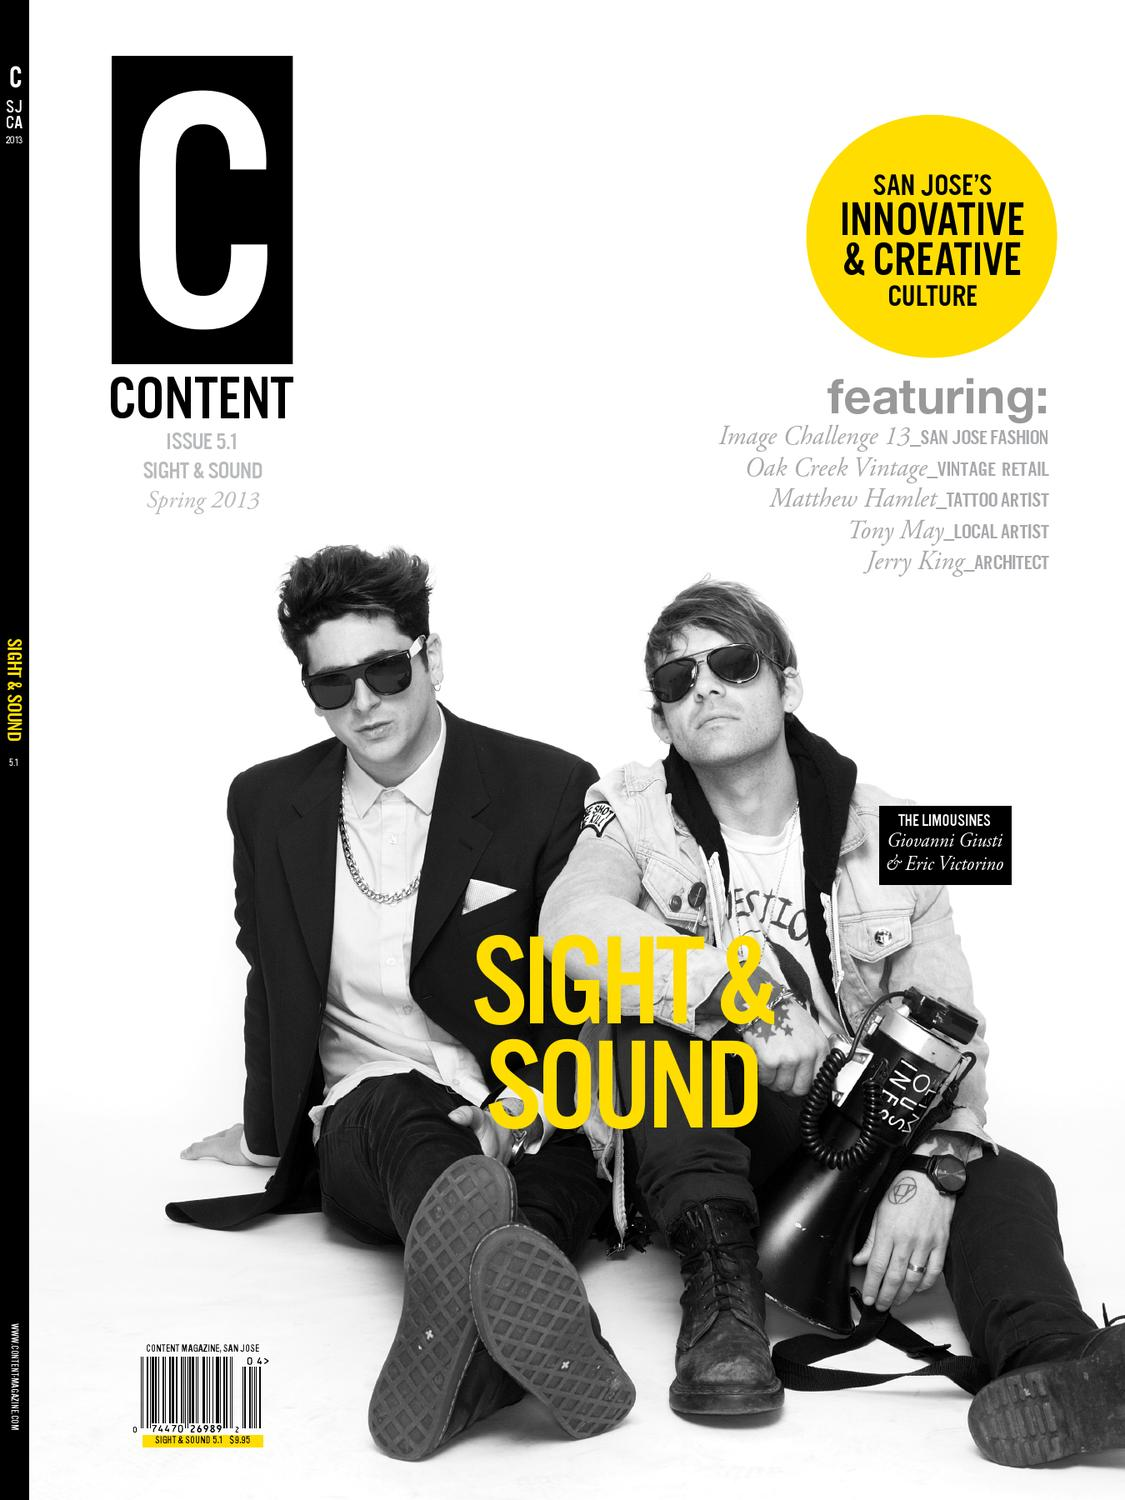 Sight and Sound Issue 5.1 by Content Magazine - issuu